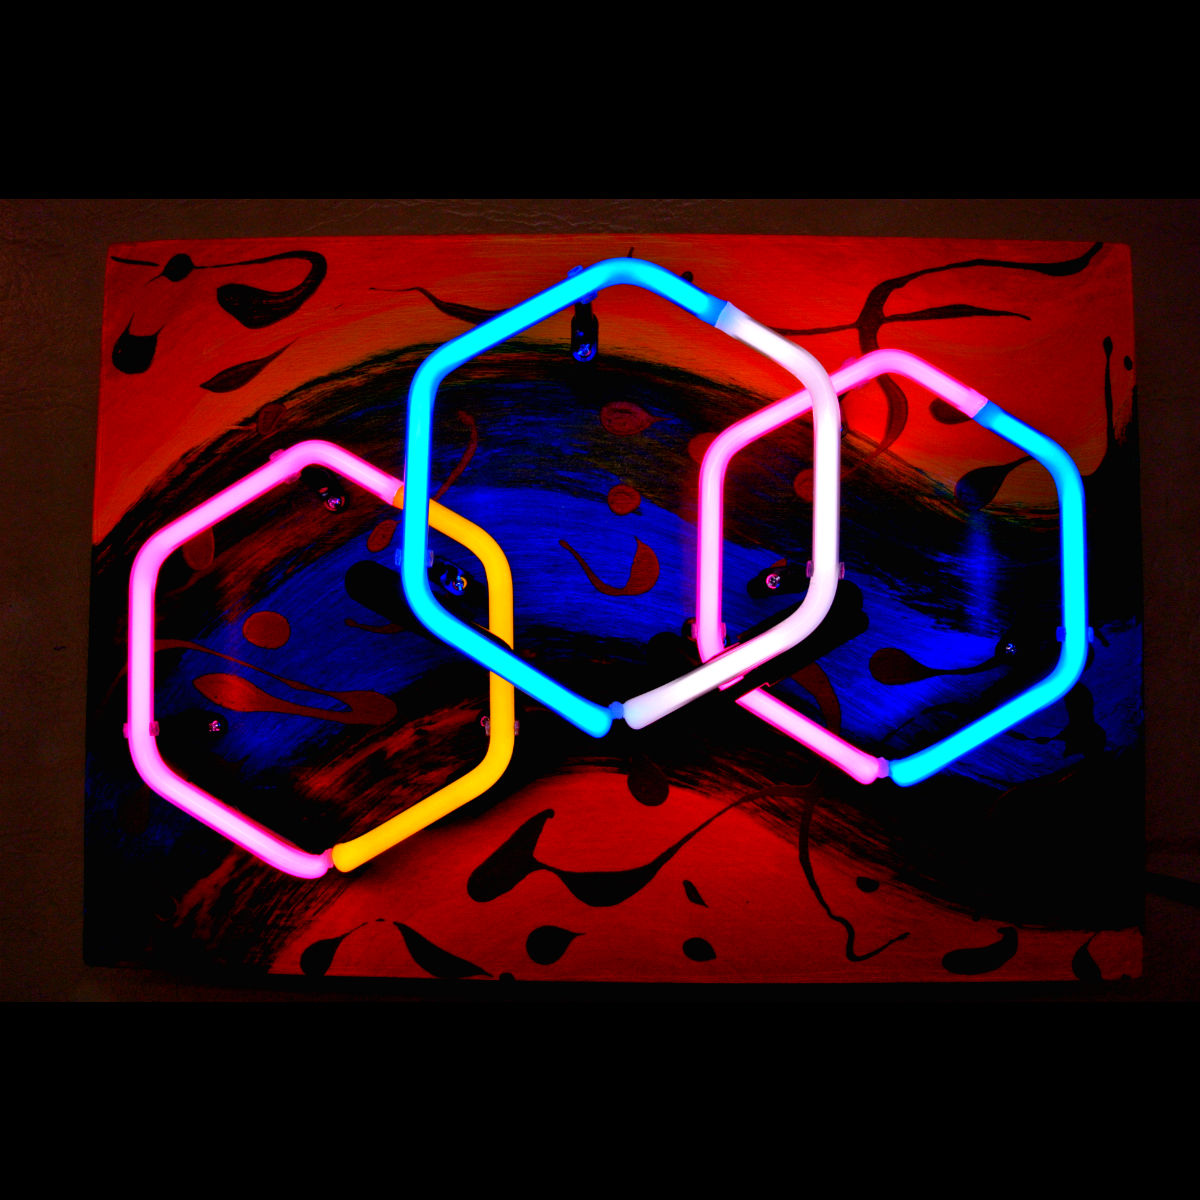 French Neon Lighting - Designer Hand-blown Originals by John Barton - BartonNeonMagic.com